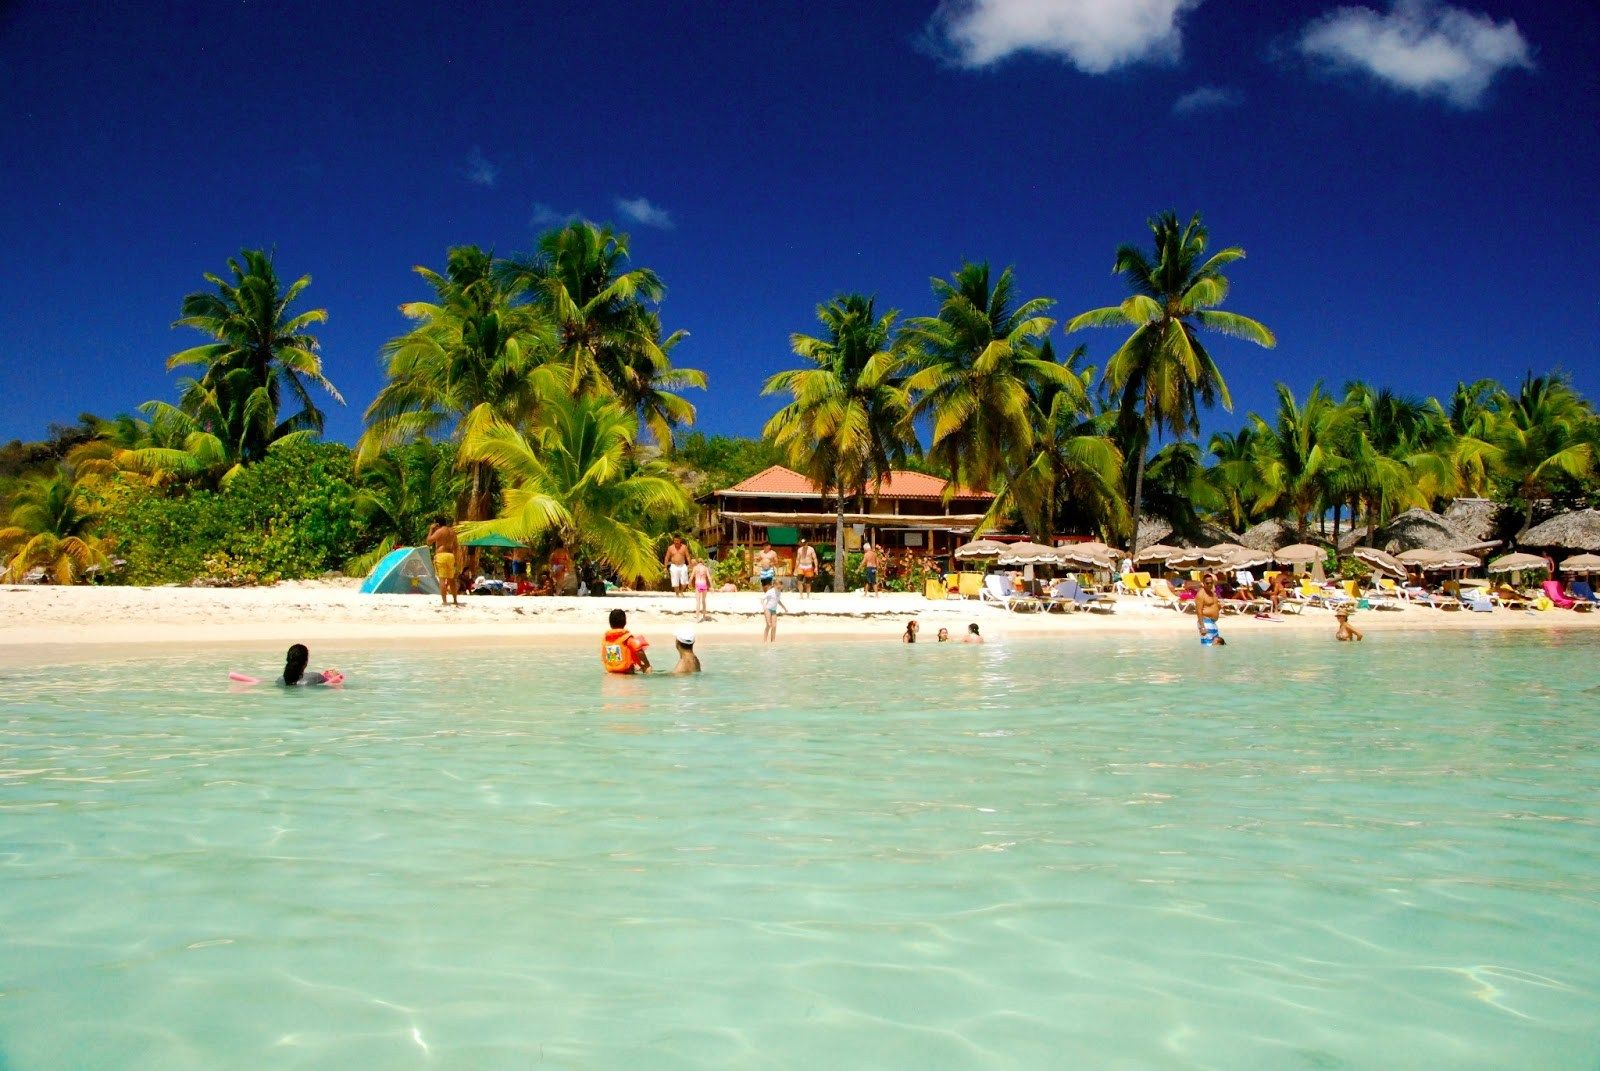 Pinel Island Saint Martin Caribbean Things To Do In St Martin Best Beaches To Visit Caribbean Travel Island Travel